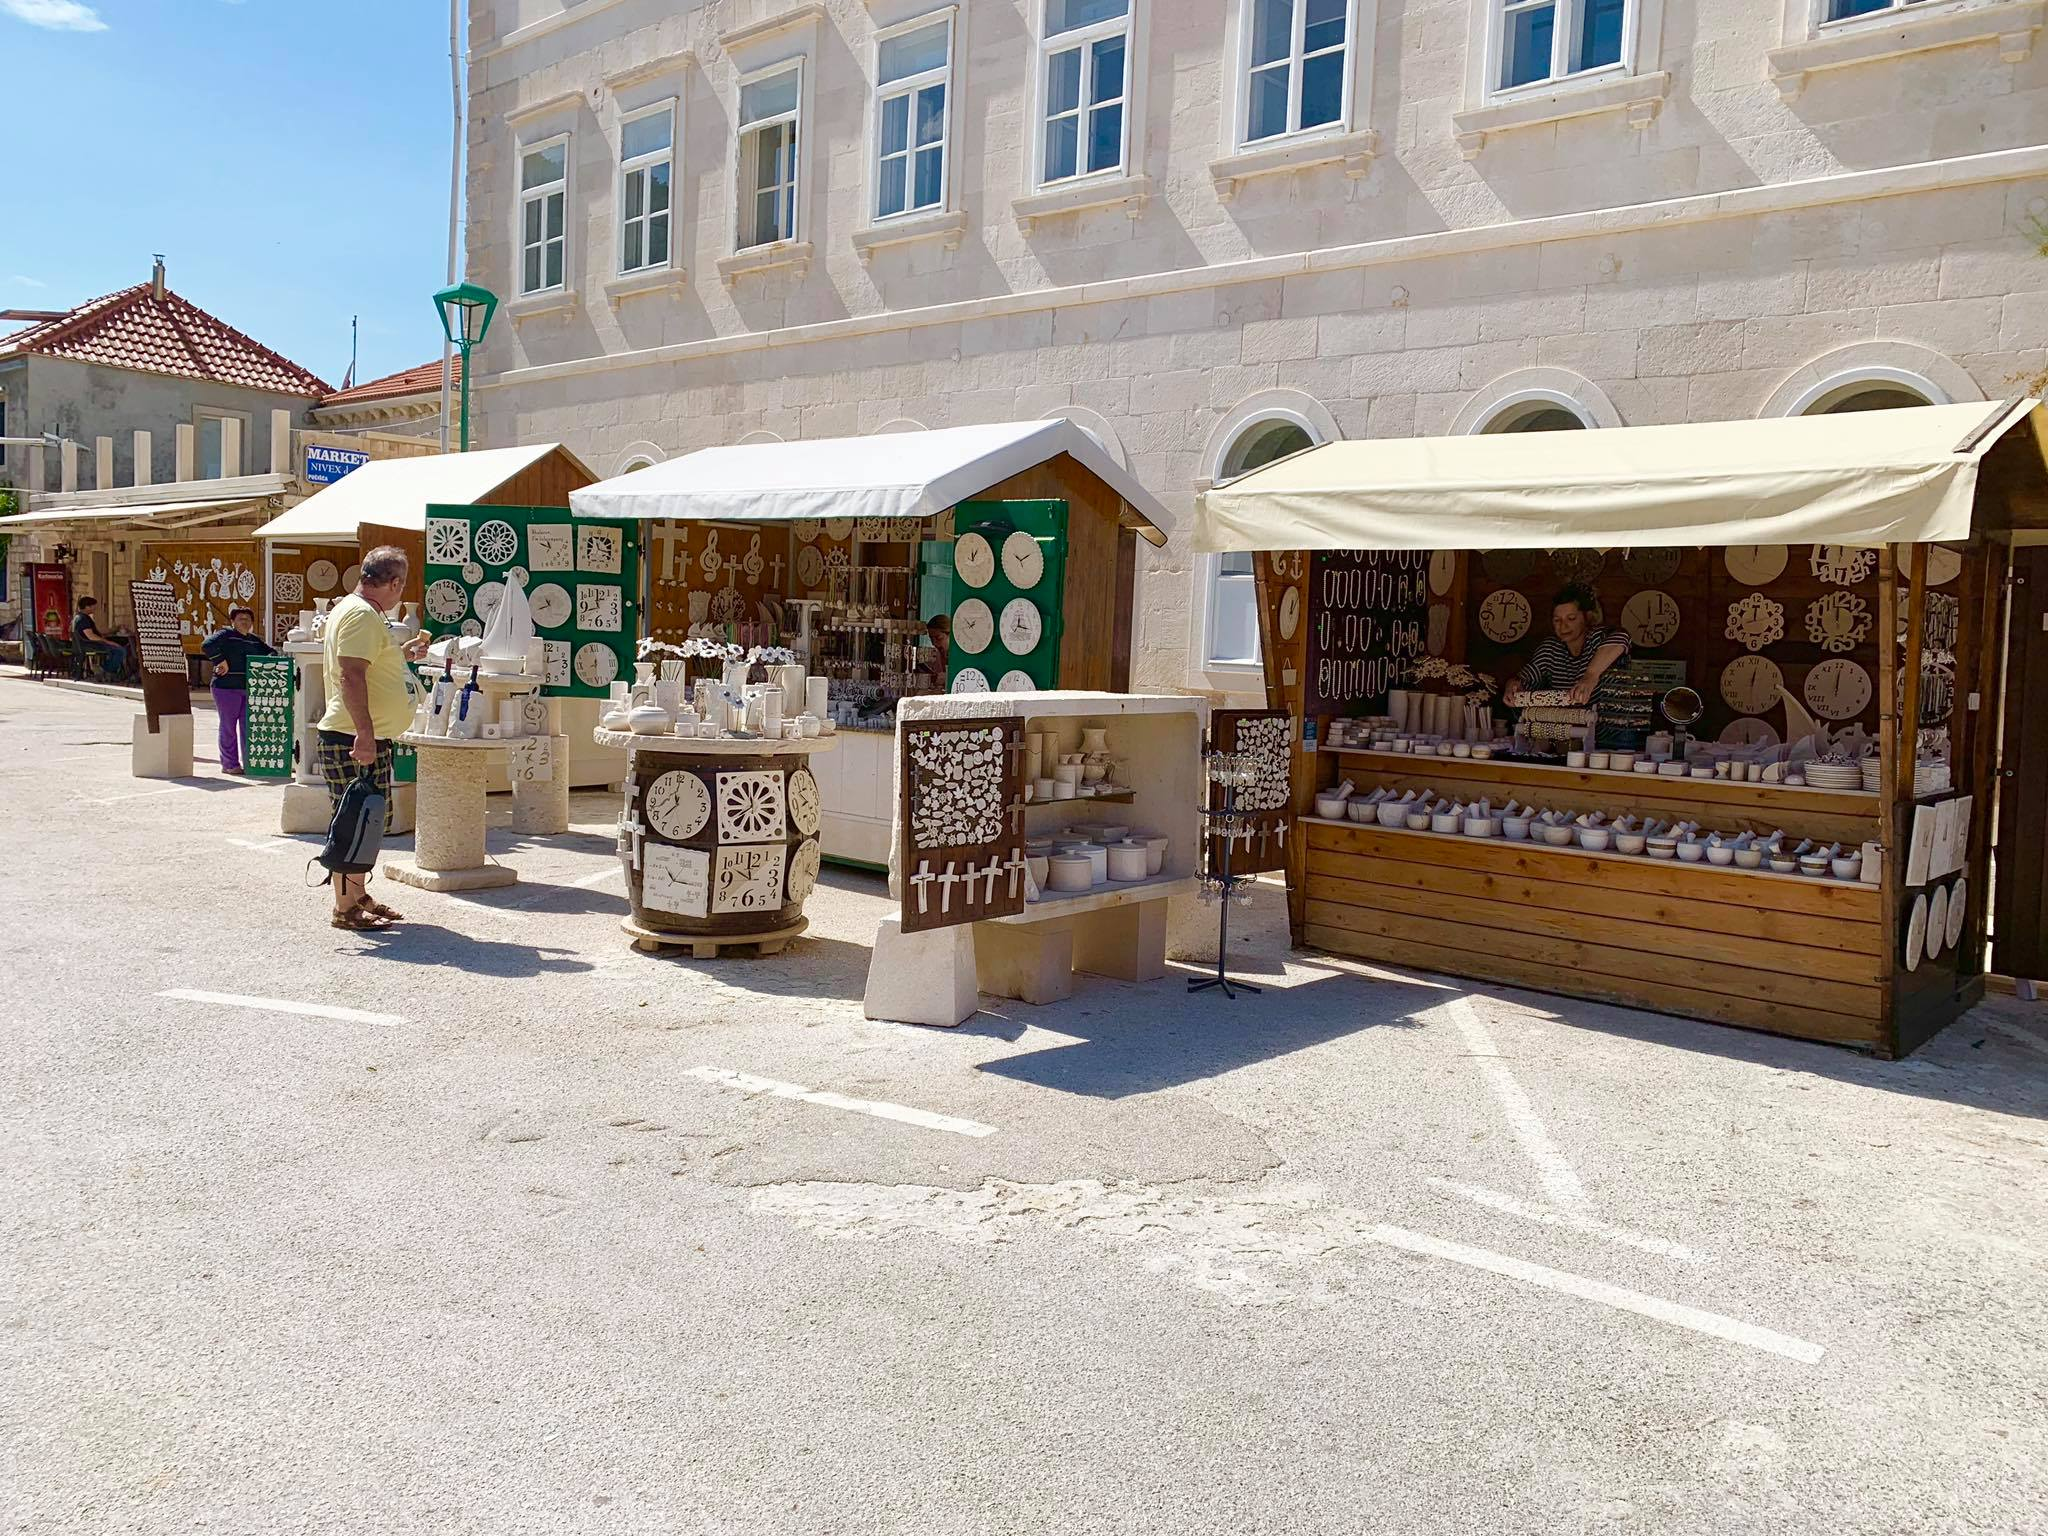 Life On The Road Day 28 Walking around the Small Coastal Town of Pucisca, Island Brac in Croatia14.jpg